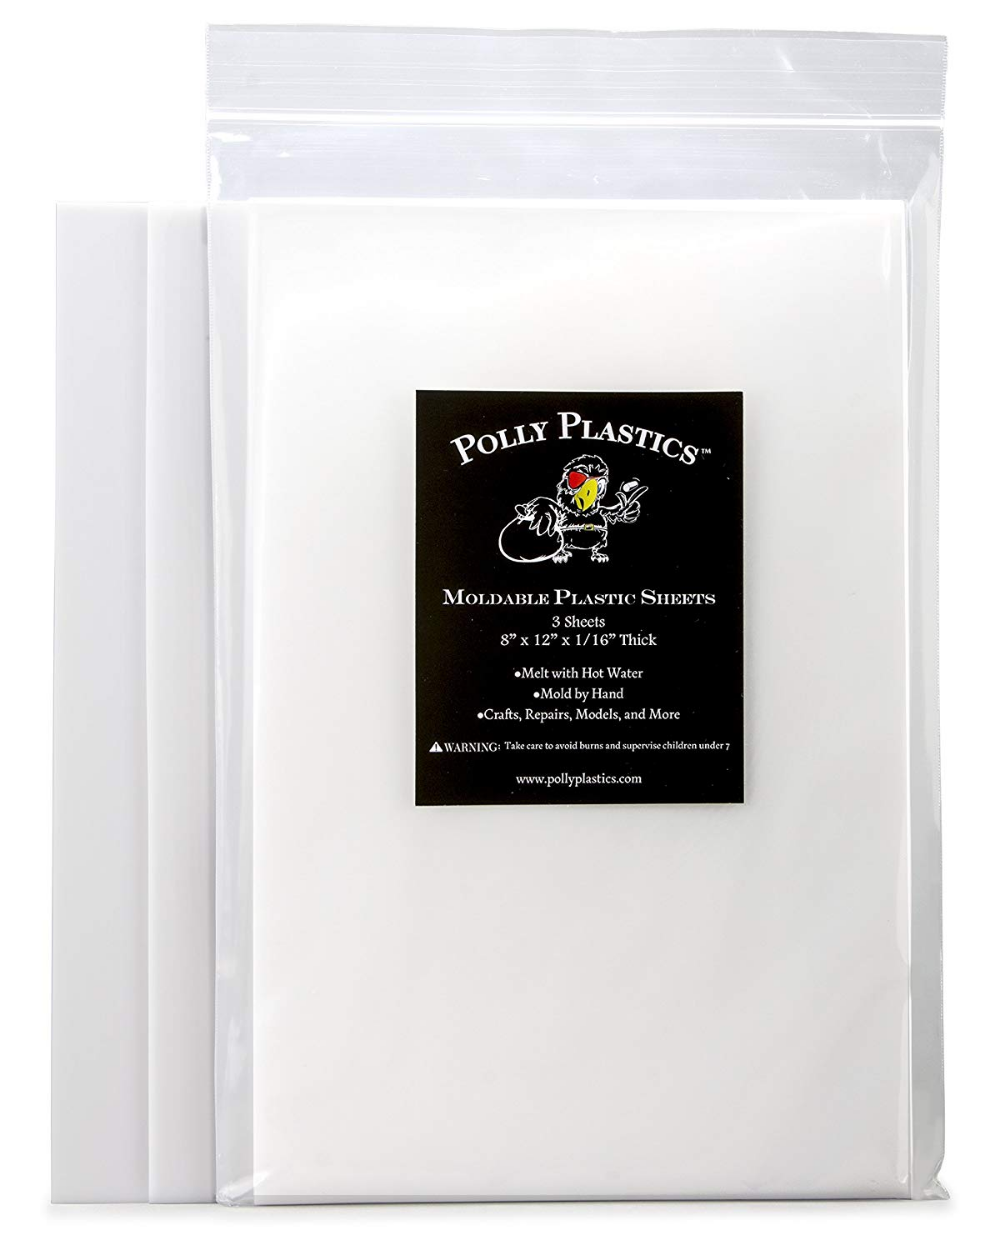 Amazonsmile Polly Plastics Heat Moldable Plastic Sheets 8 Inch X 12 Inch X 1 16 Inch For Cosplay Moldable Plastic Sheets Moldable Plastic Polly Plastics